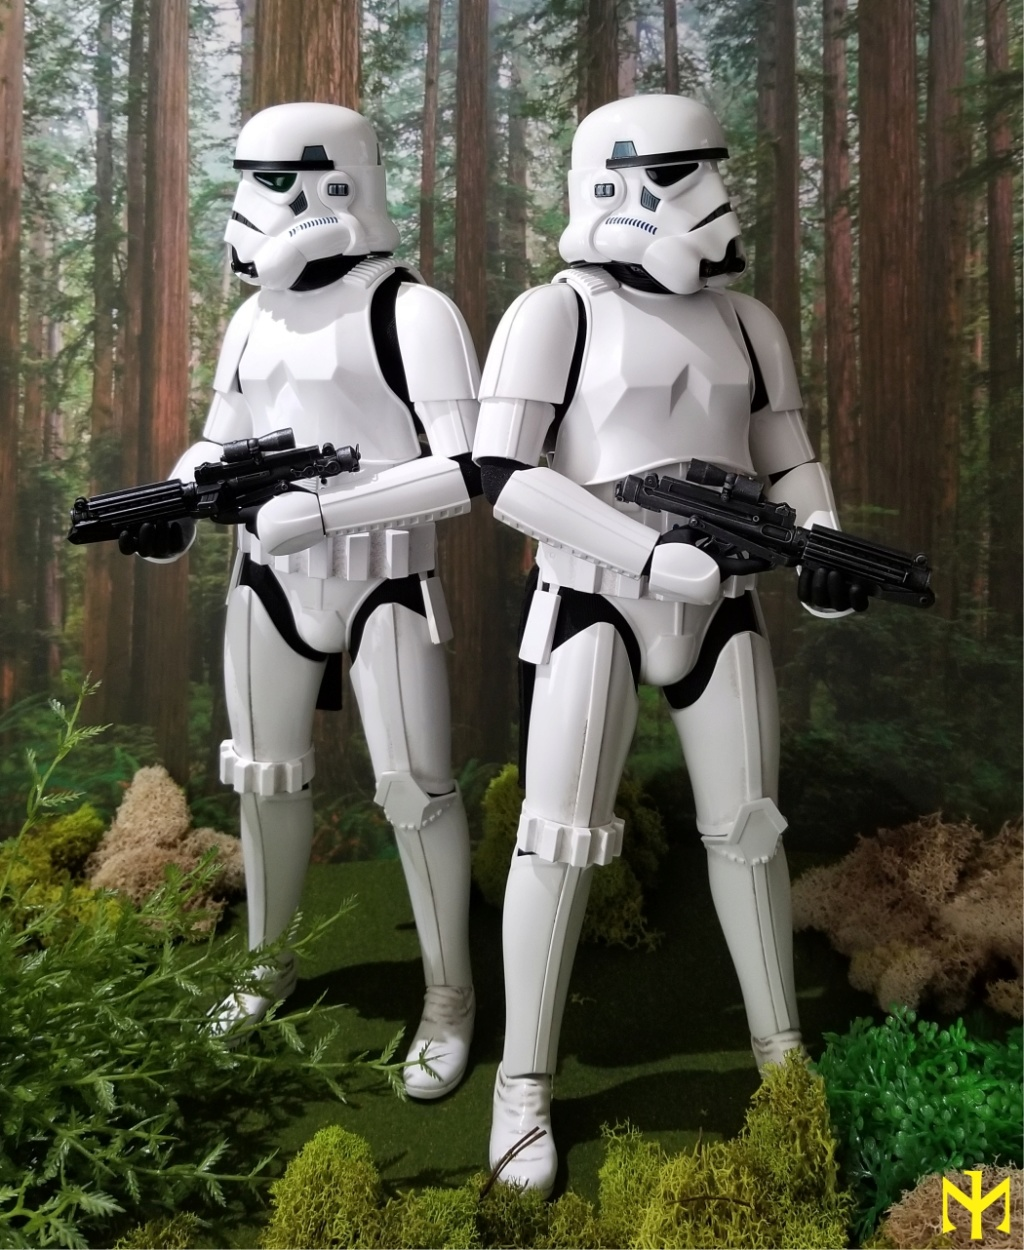 Military - STAR WARS Return of the Jedi Stormtrooper by Hot Toys review (updated with Part II - Deluxe) Htrjs010